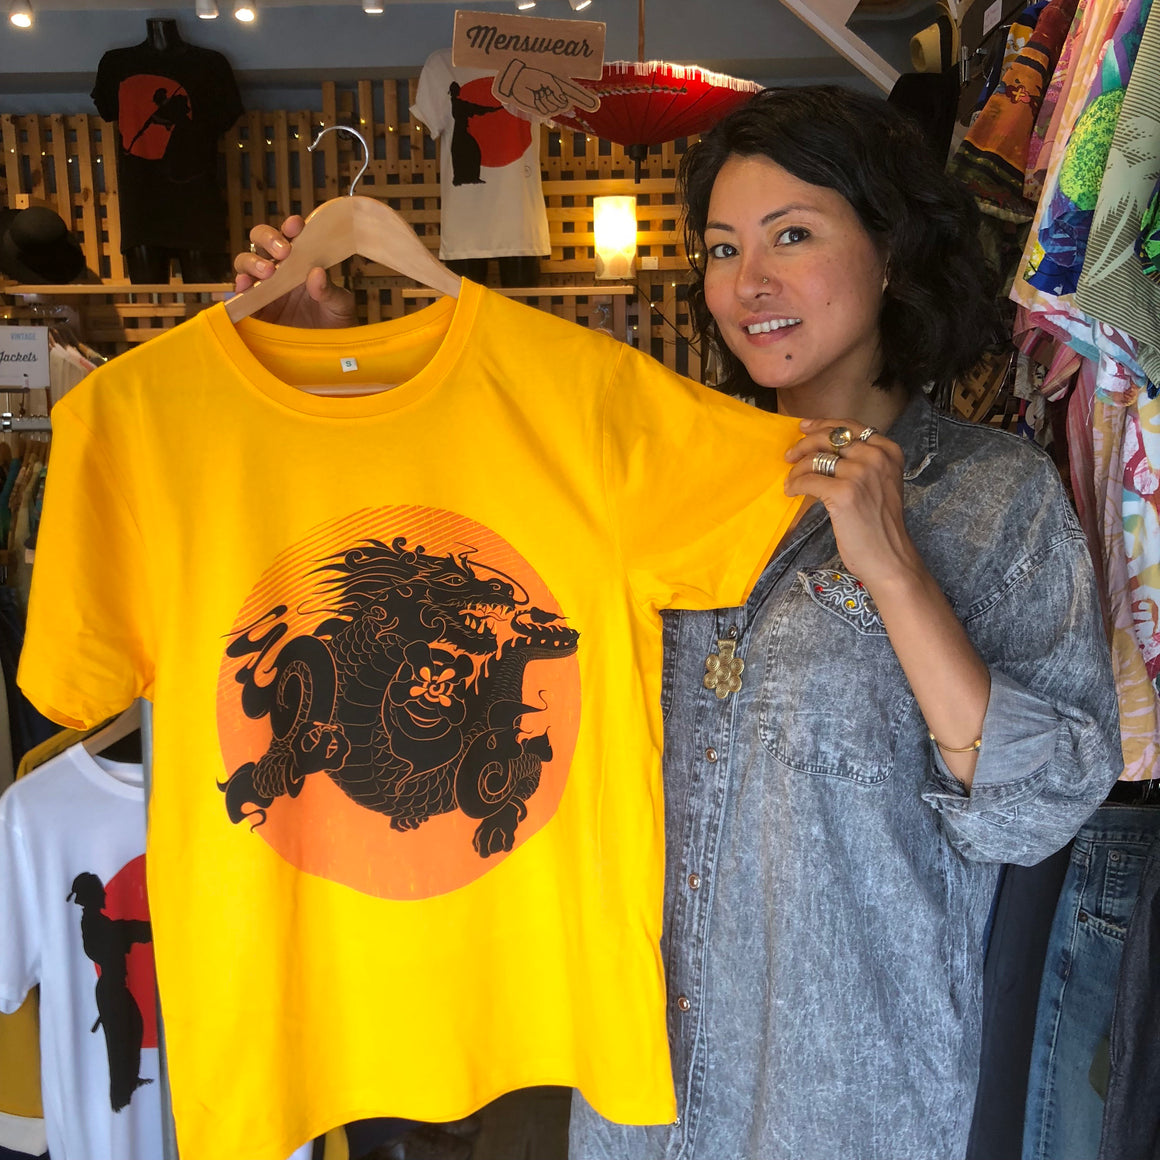 Bhutanese Thunder Dragon fairtrade, organic cotton t-shirt - yellow / gold - design detail